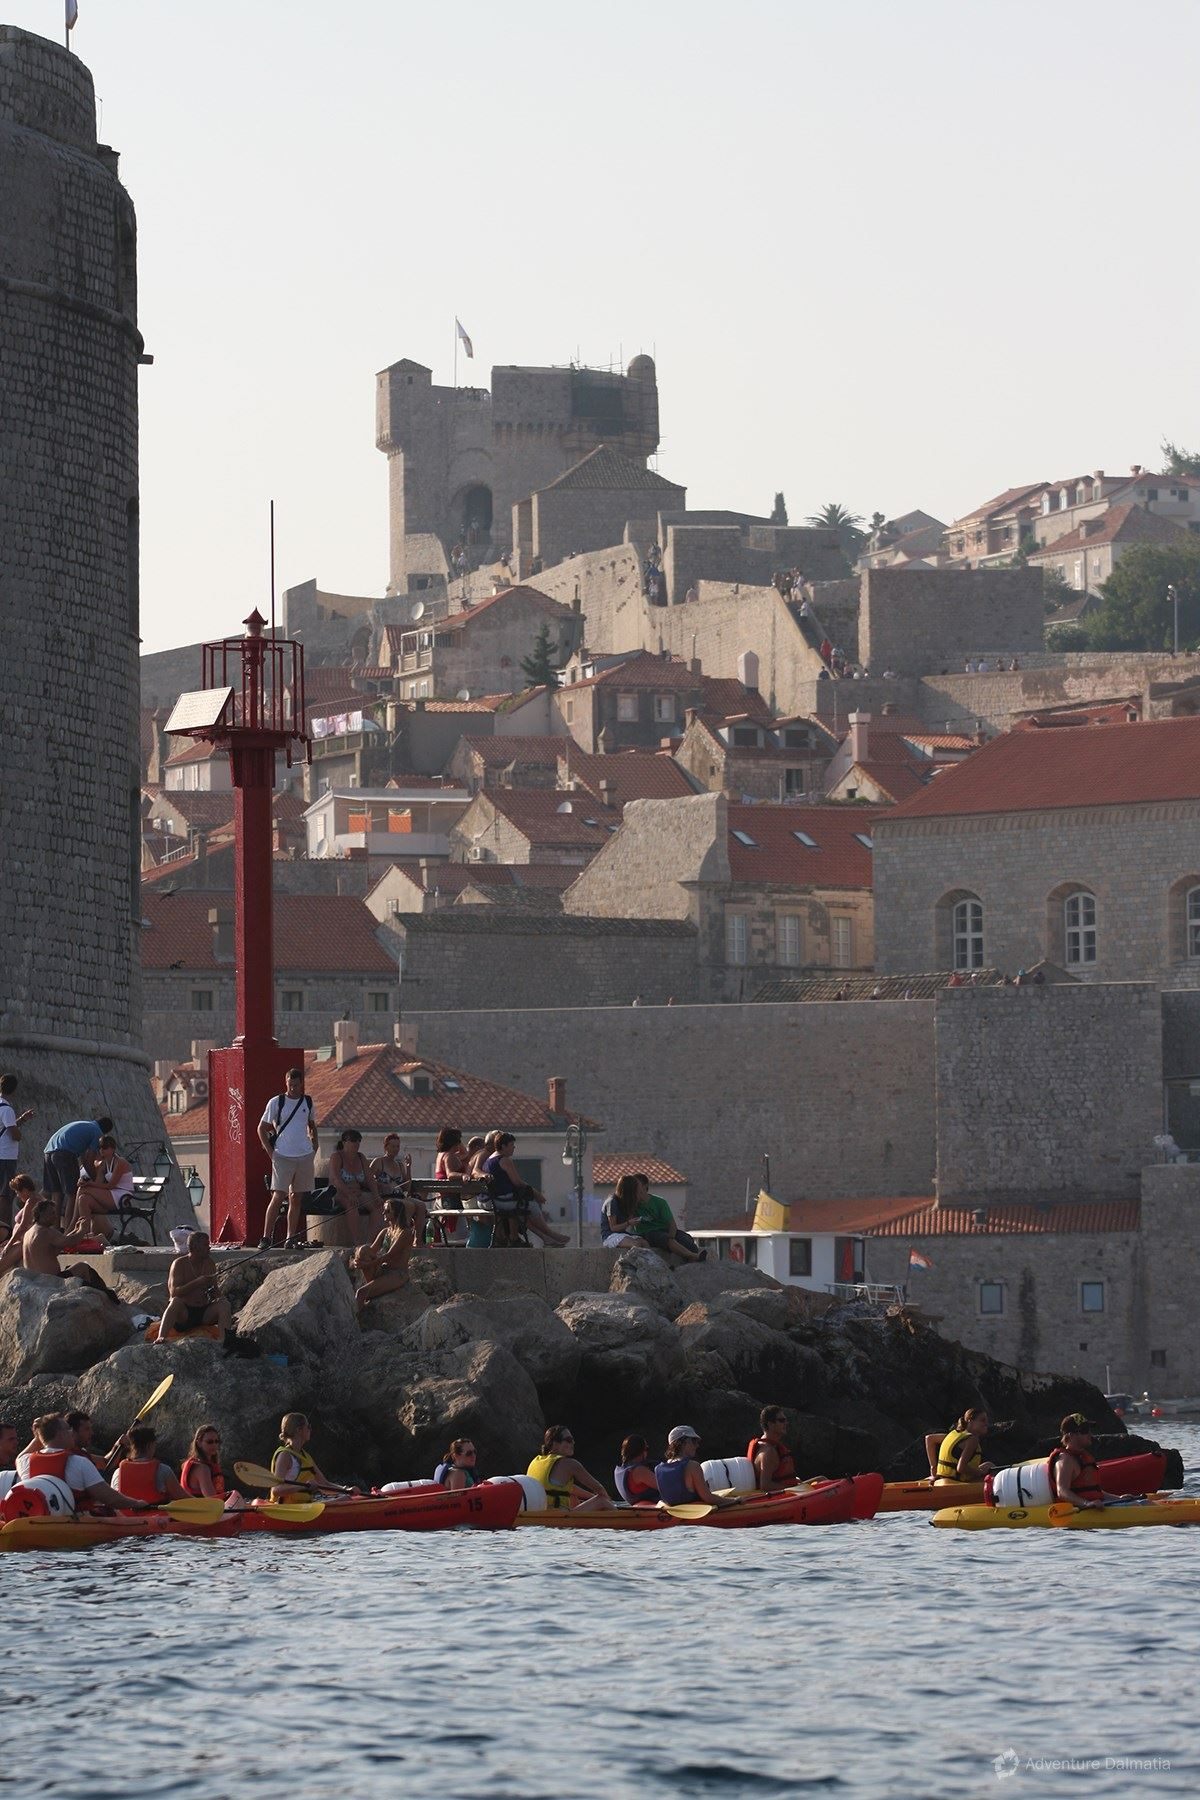 A view of the old town from a kayak